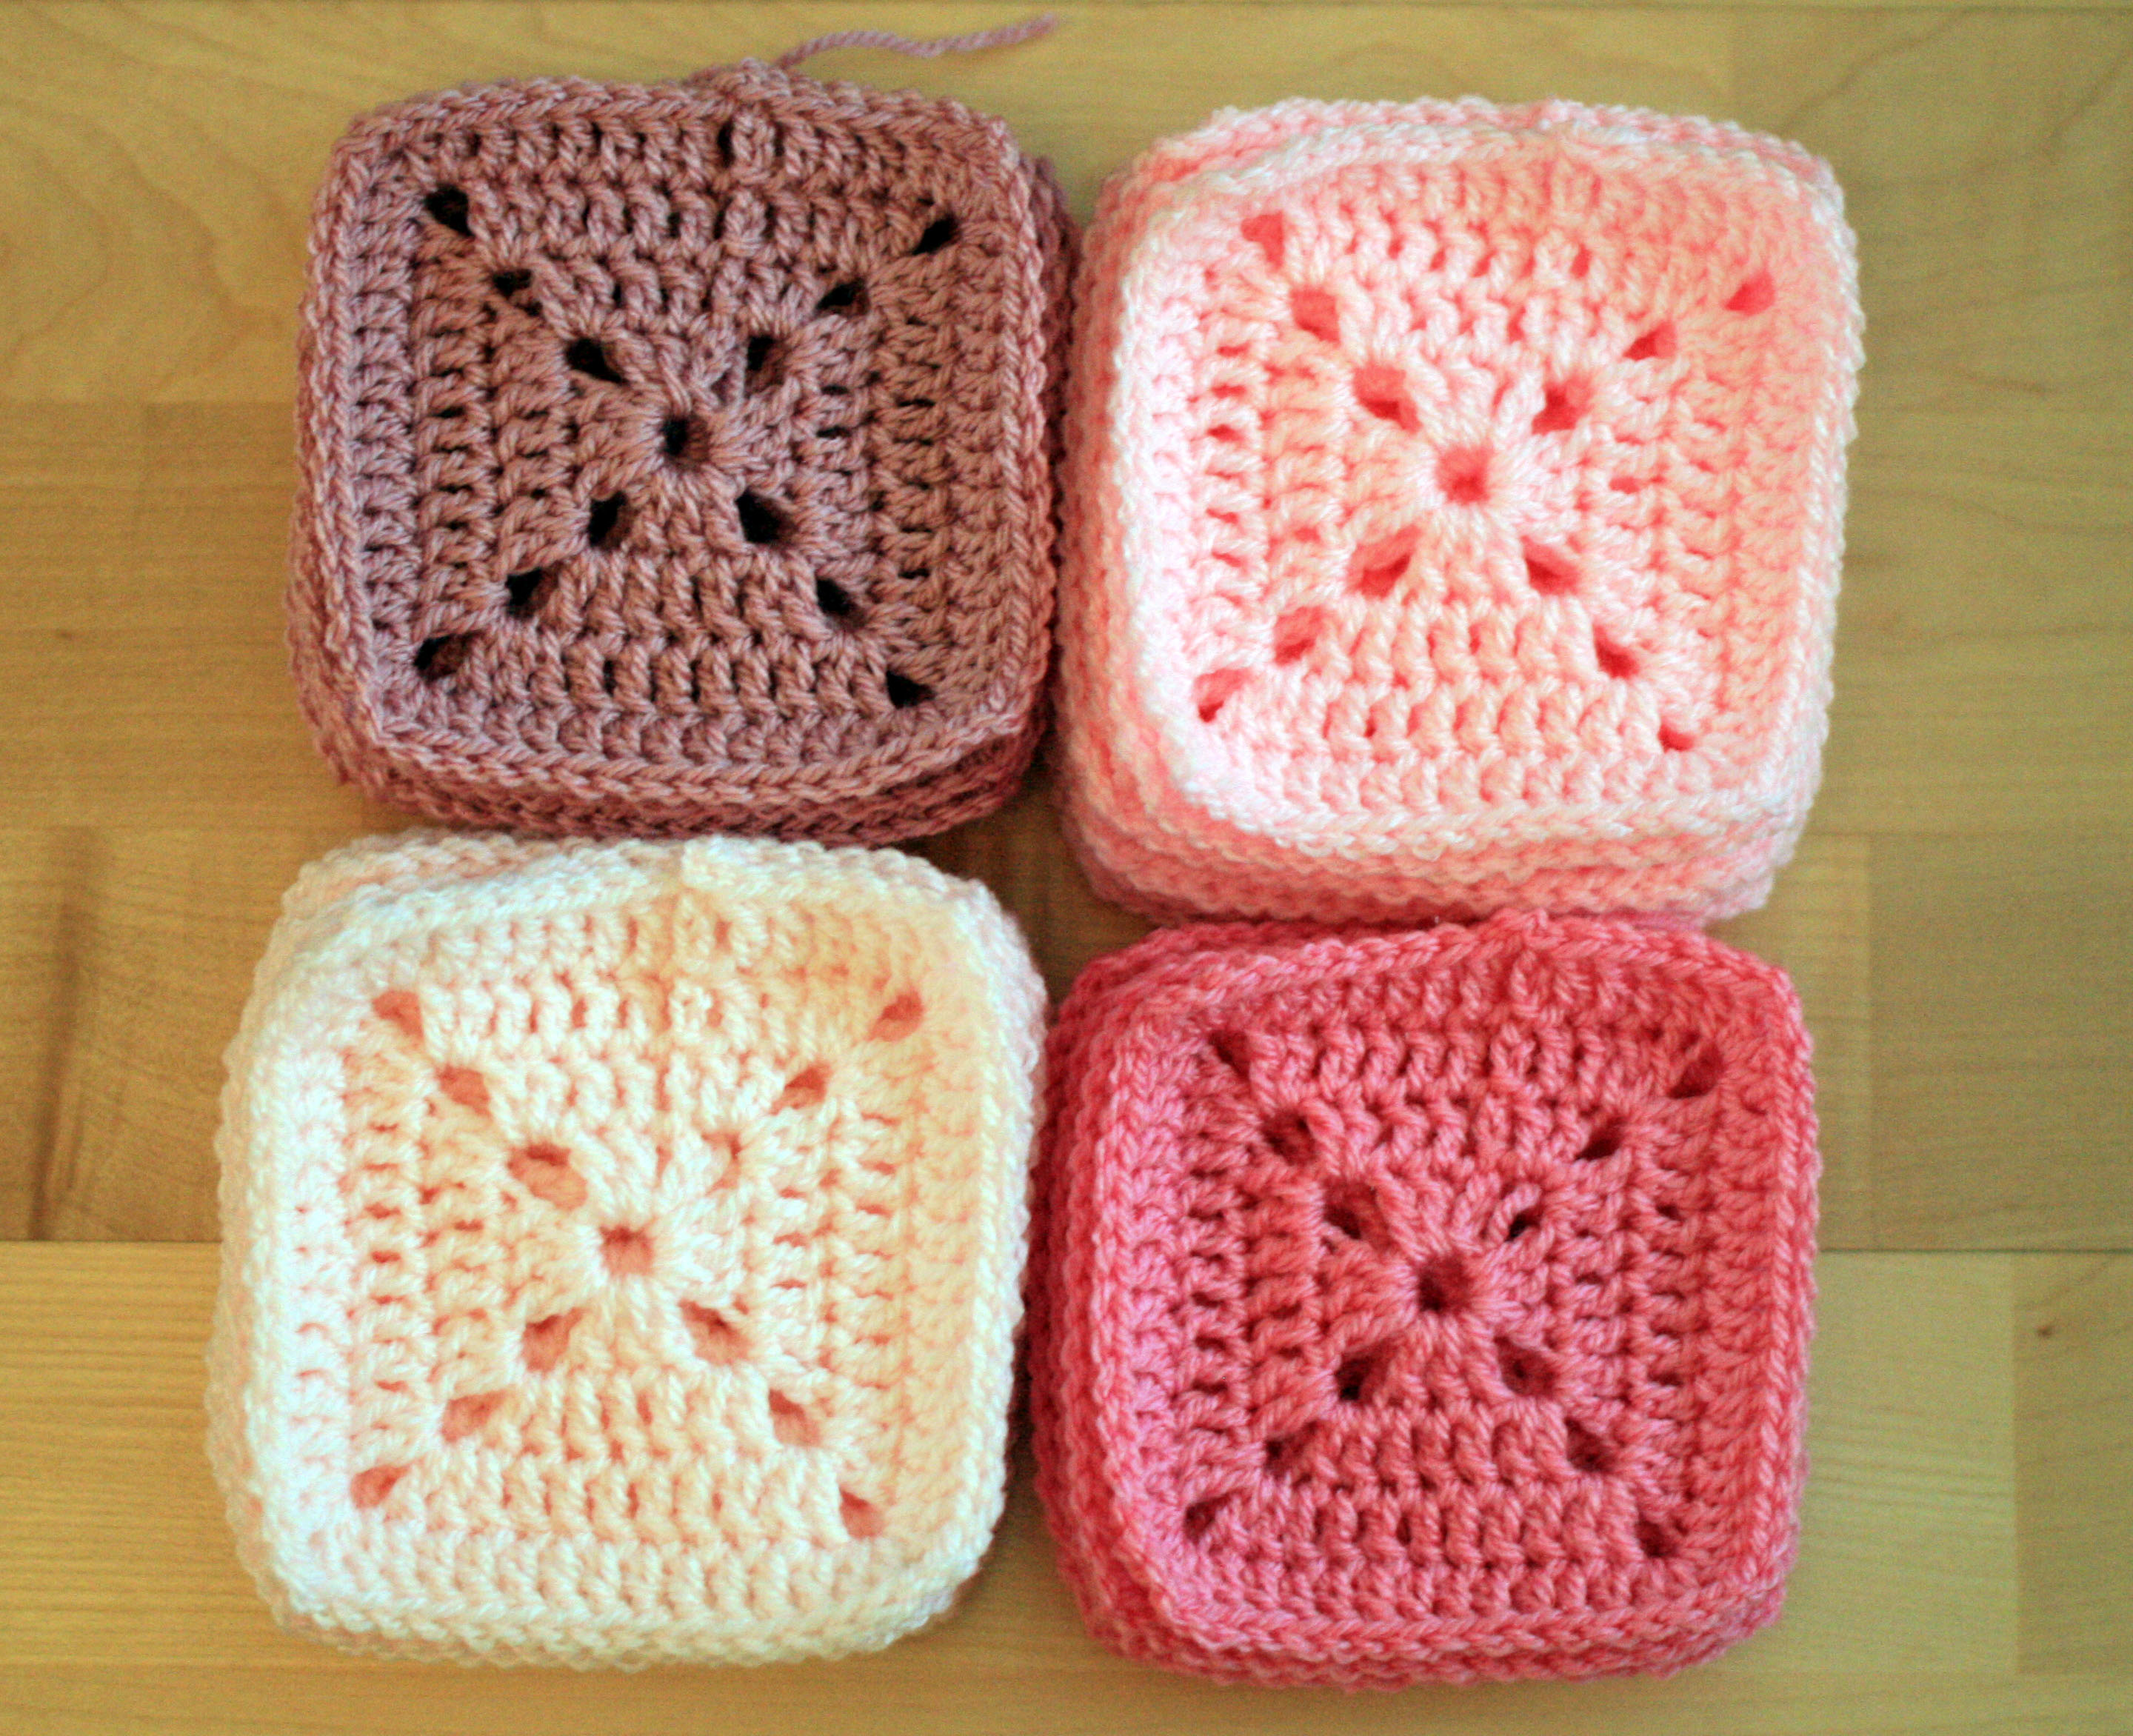 Crochet Patterns For Baby Blankets Squares : Crochet Baby Blanket Pretty In Pink